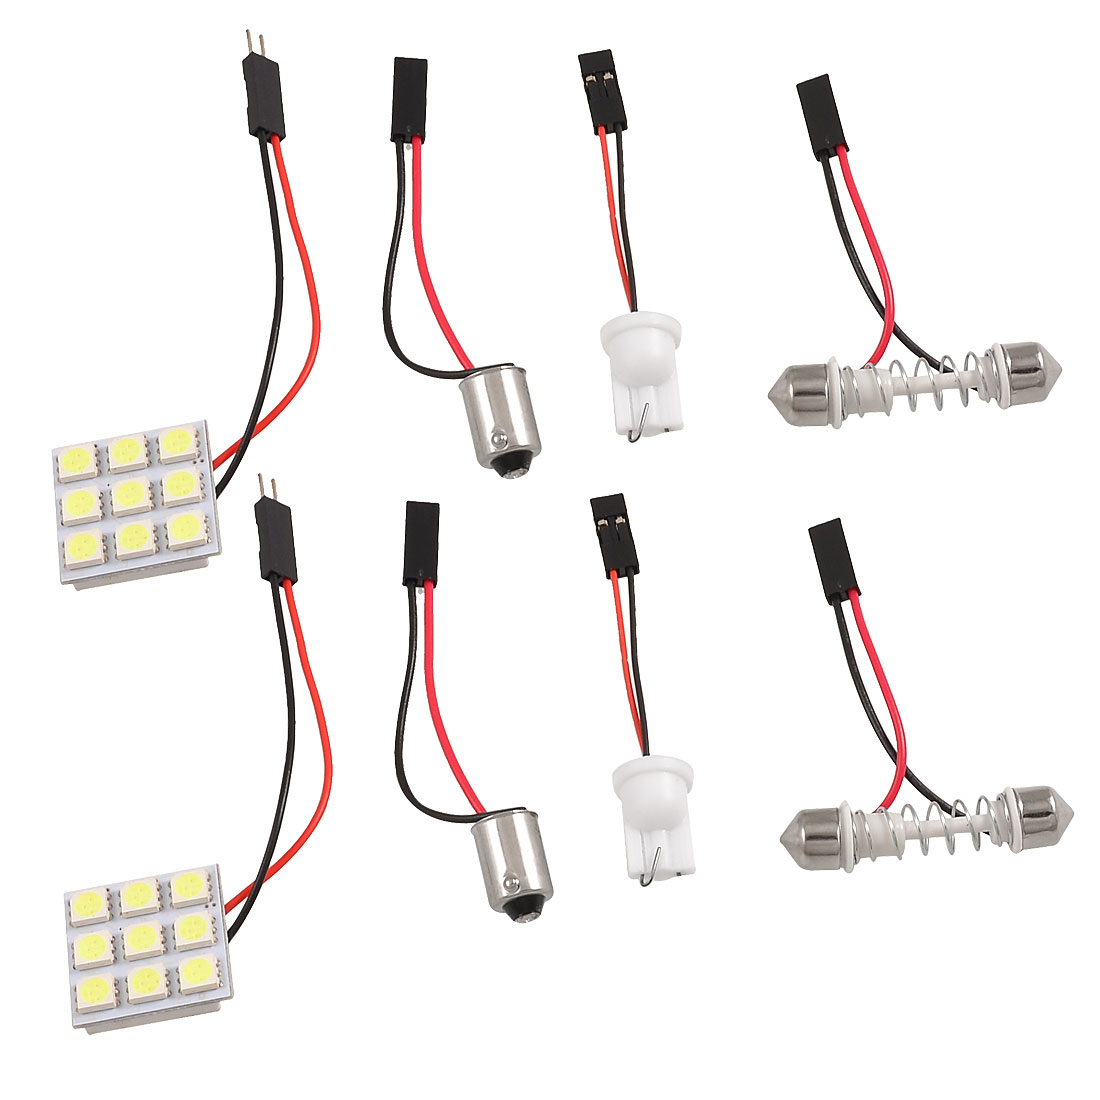 2 Pcs Car White 5050 SMD 9-LED Light Dome Lamp Panel w T10 BA9S Festoon Adapter